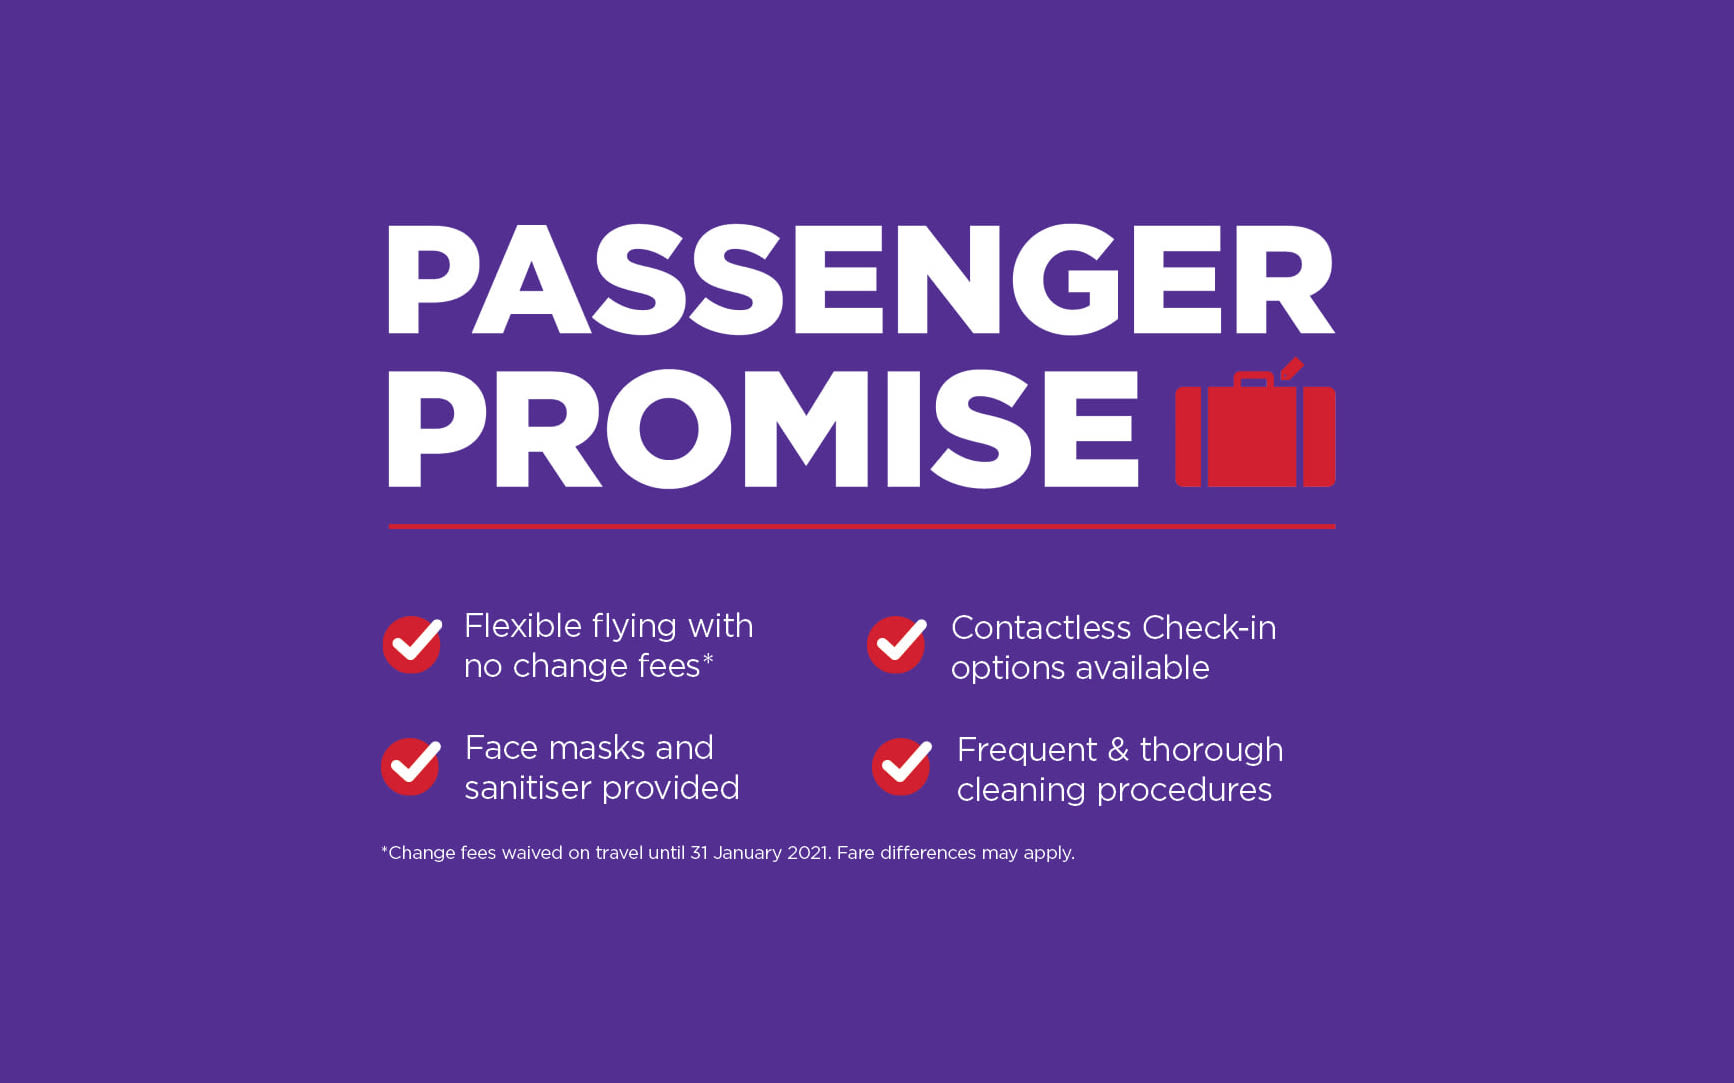 Text reads: Passenger Promise, Flexible flying with no change fees (Change fees waived on travel until 31 January 2021. Fare differences may apply.), Face masks and sanitiser provided, Contactless Check-in options available, Frequent & thorough cleaning